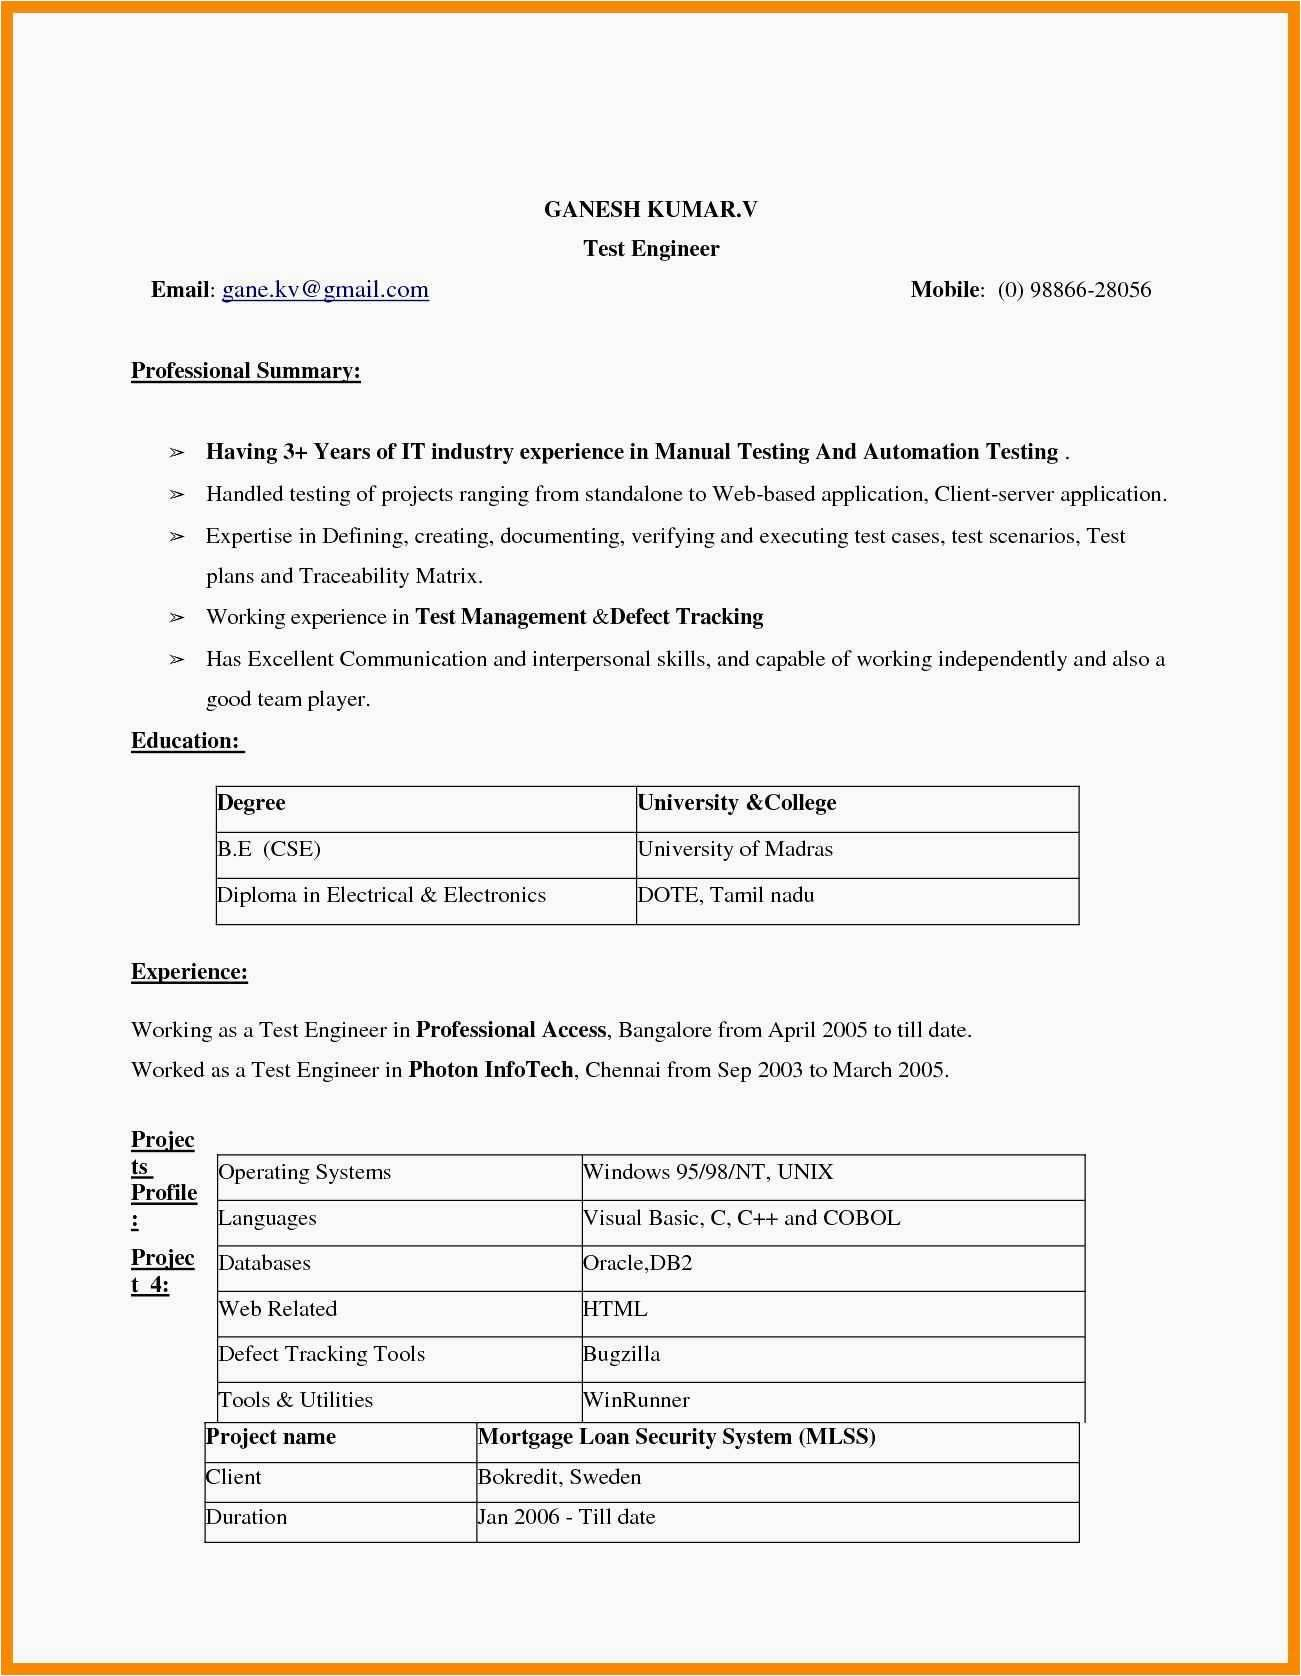 Property Management Resume Template - How to Make A Resume Word 2007 Refrence Resume Templates Word